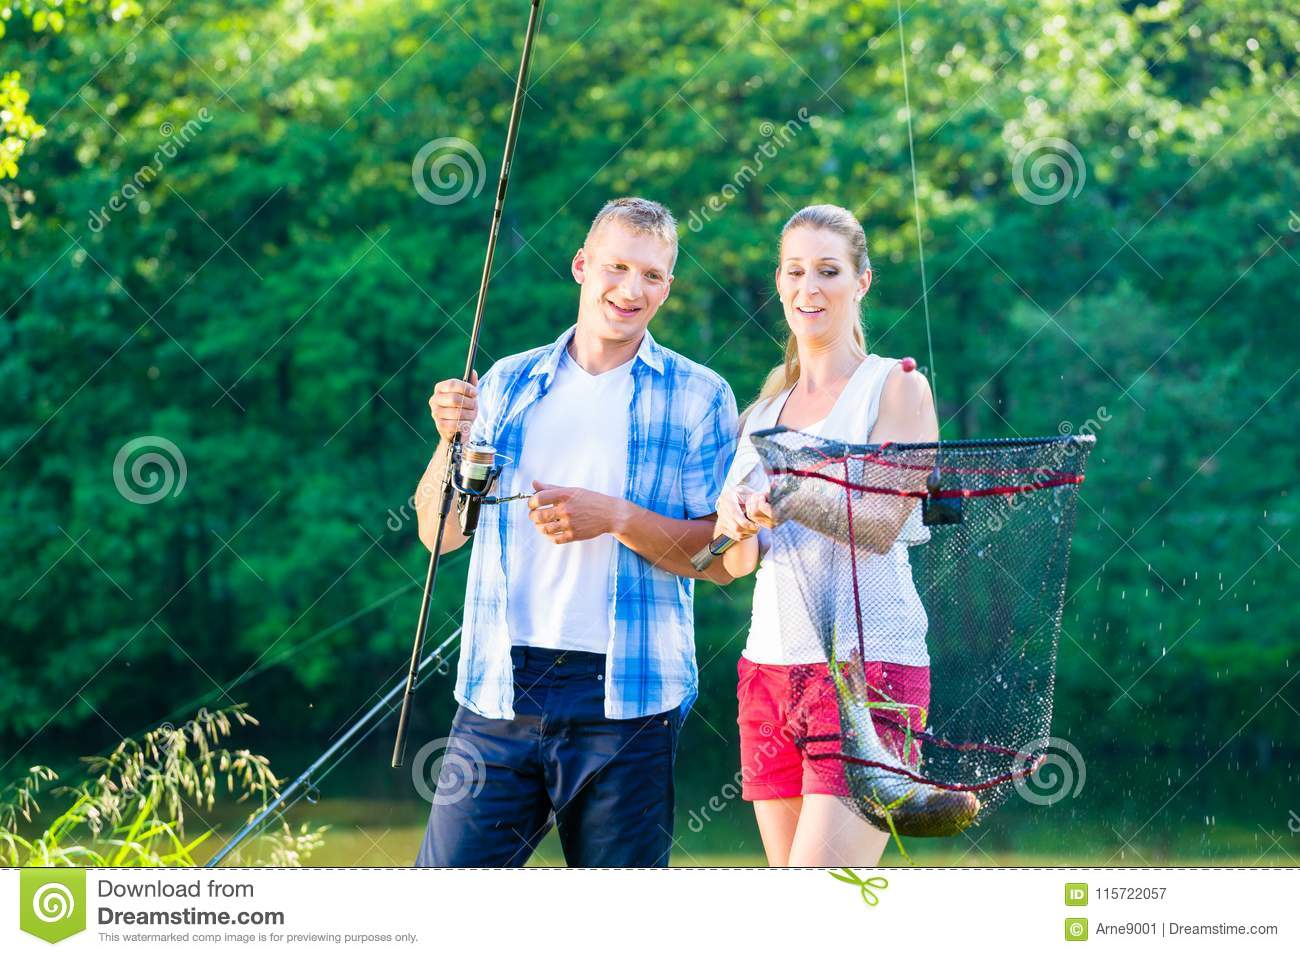 Couple sport fishing bragging with fish caught